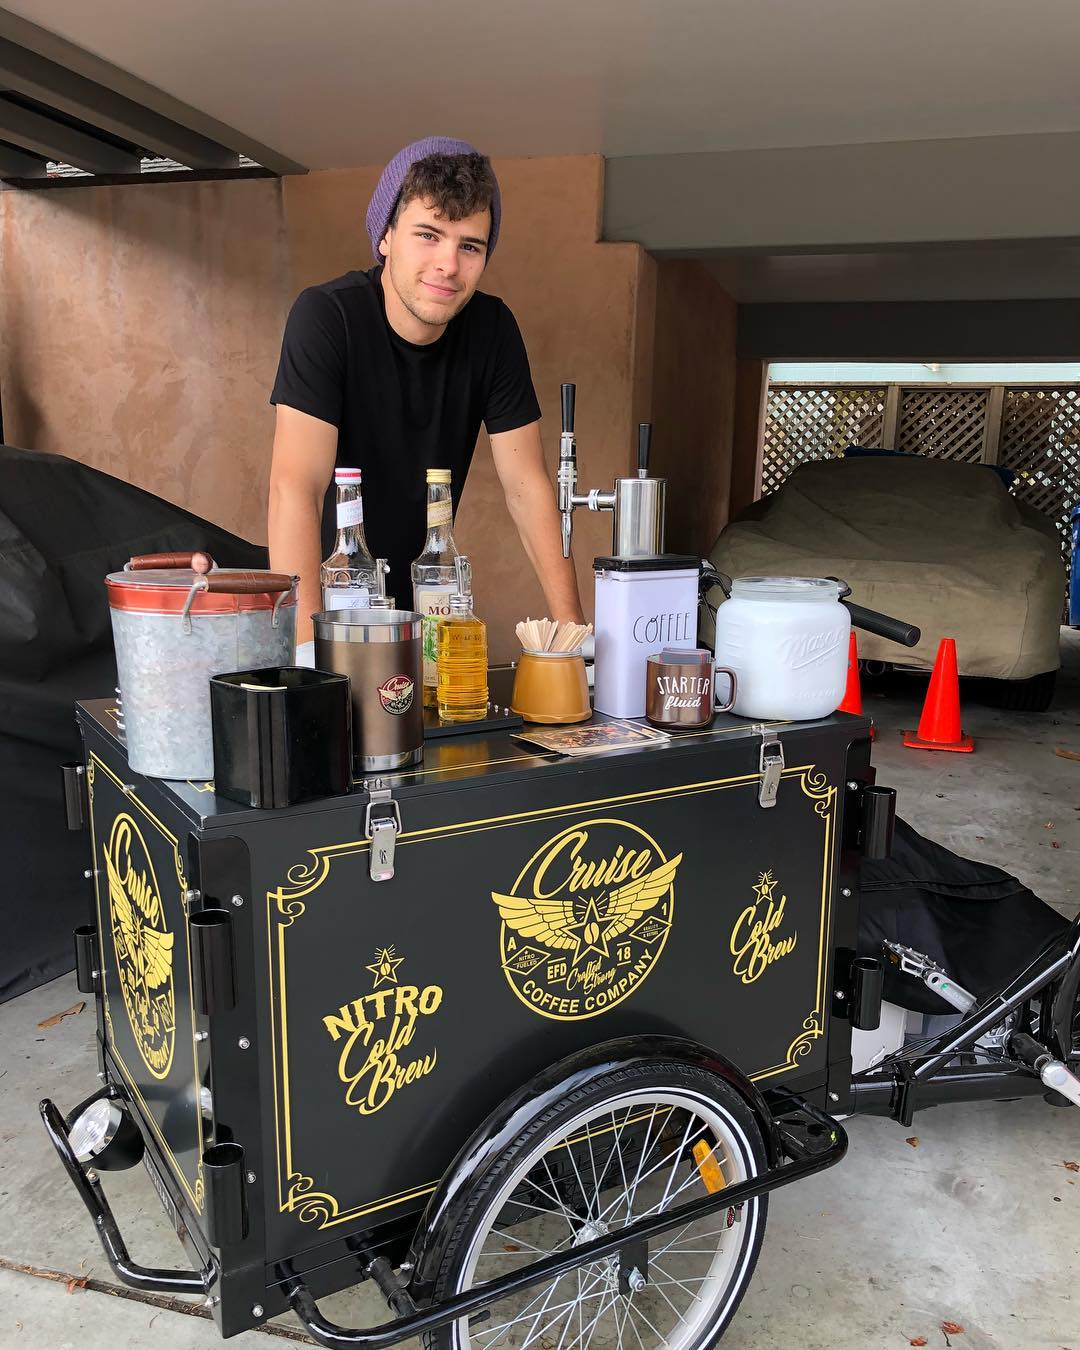 Nitro Cold Brew Coffee Cart vendor set up and smiling